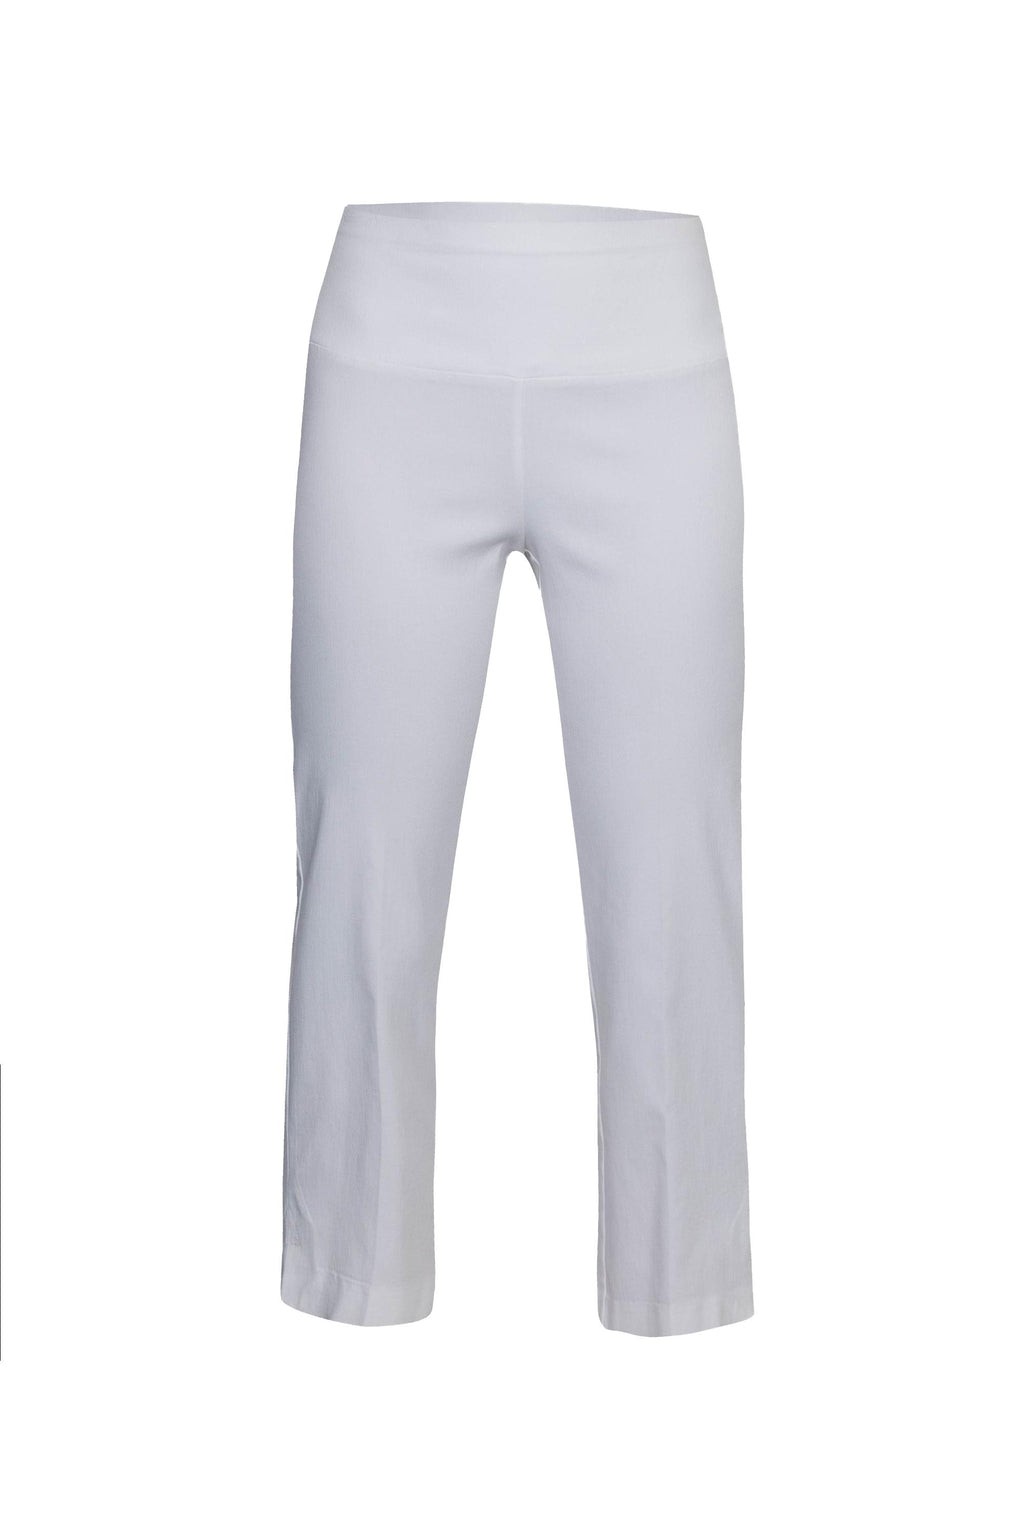 VERGE BOSTON PANT